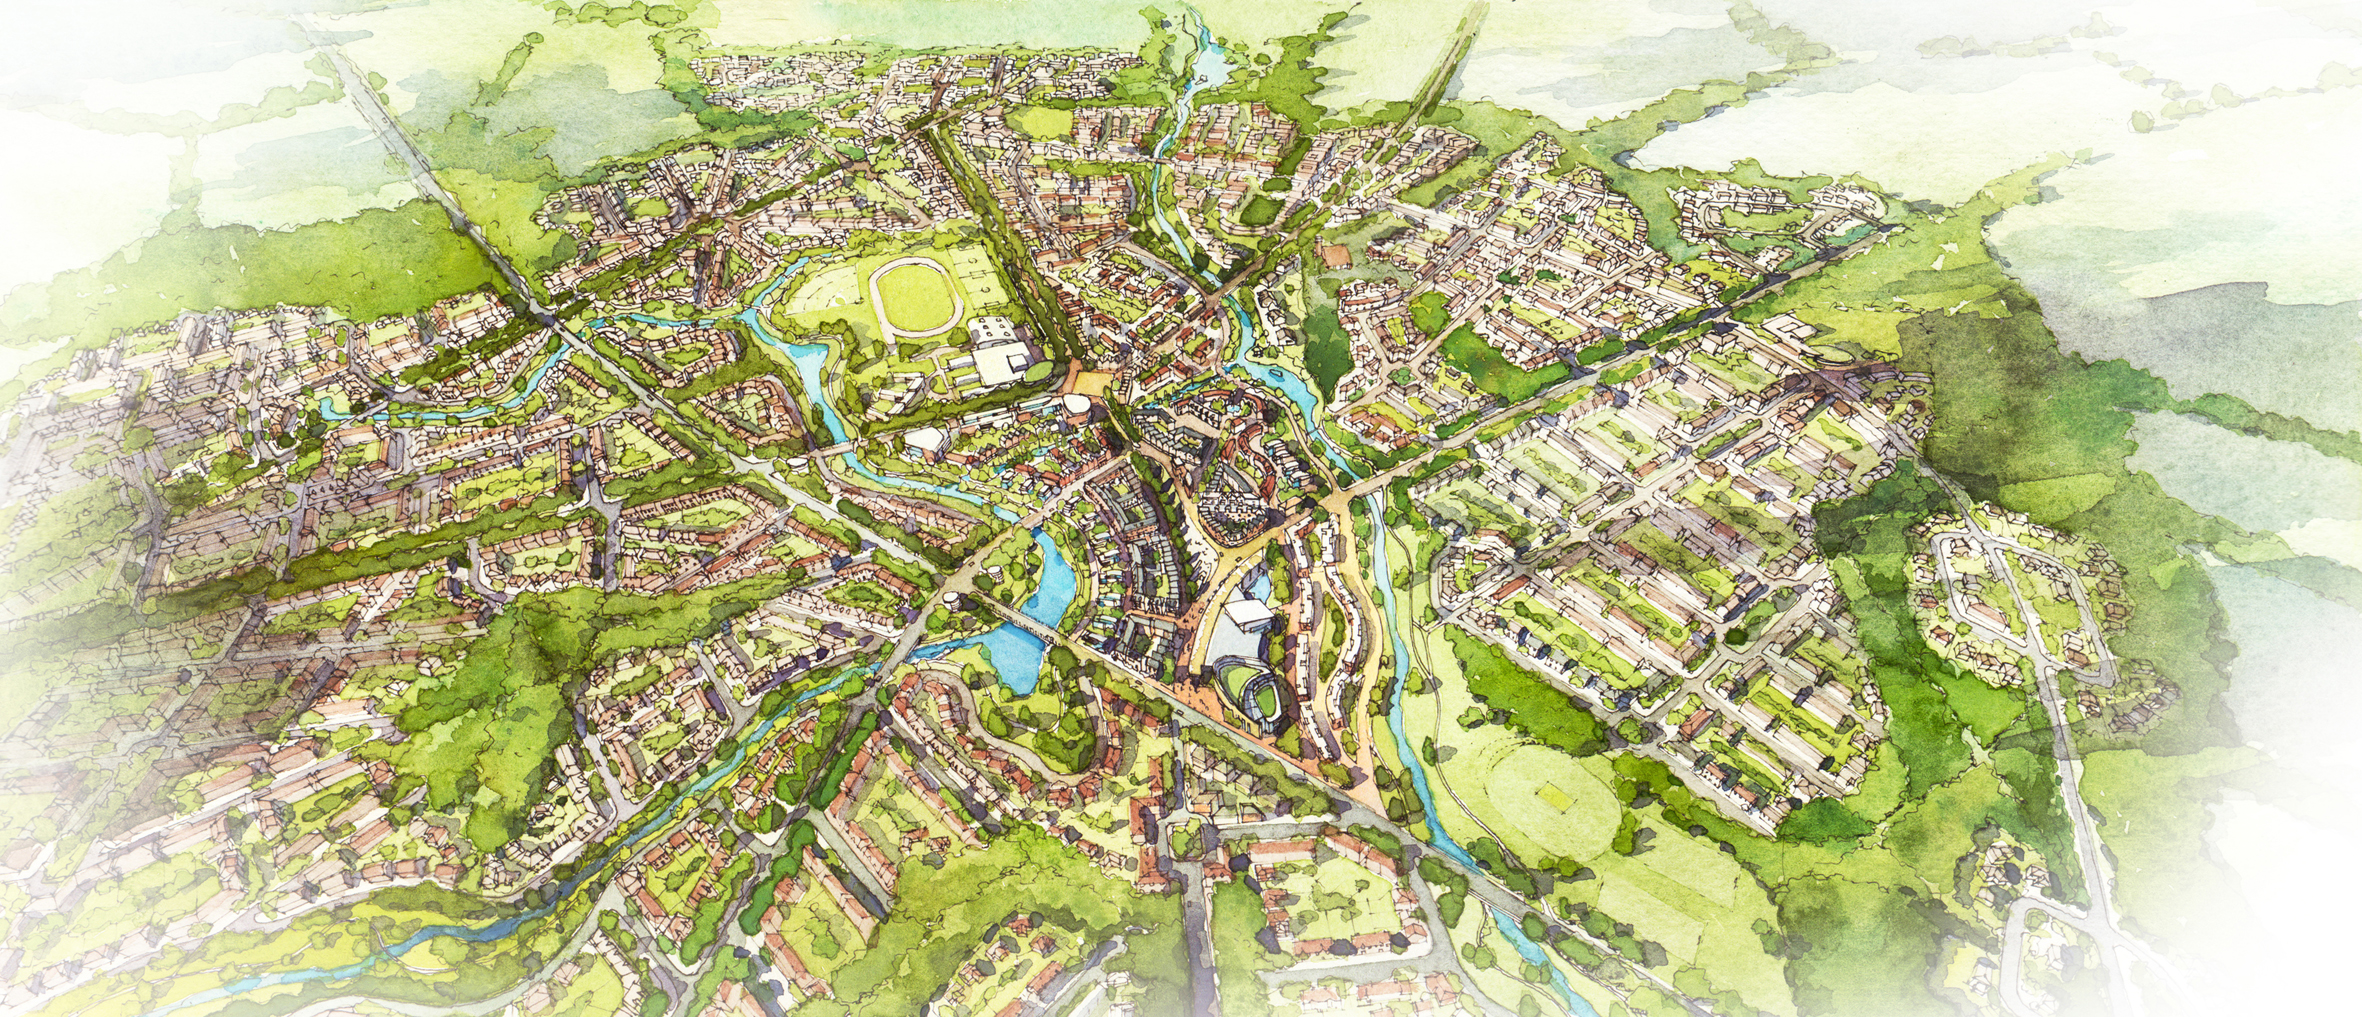 wolfson prize garden cities wei yang and partner's arc of new homes